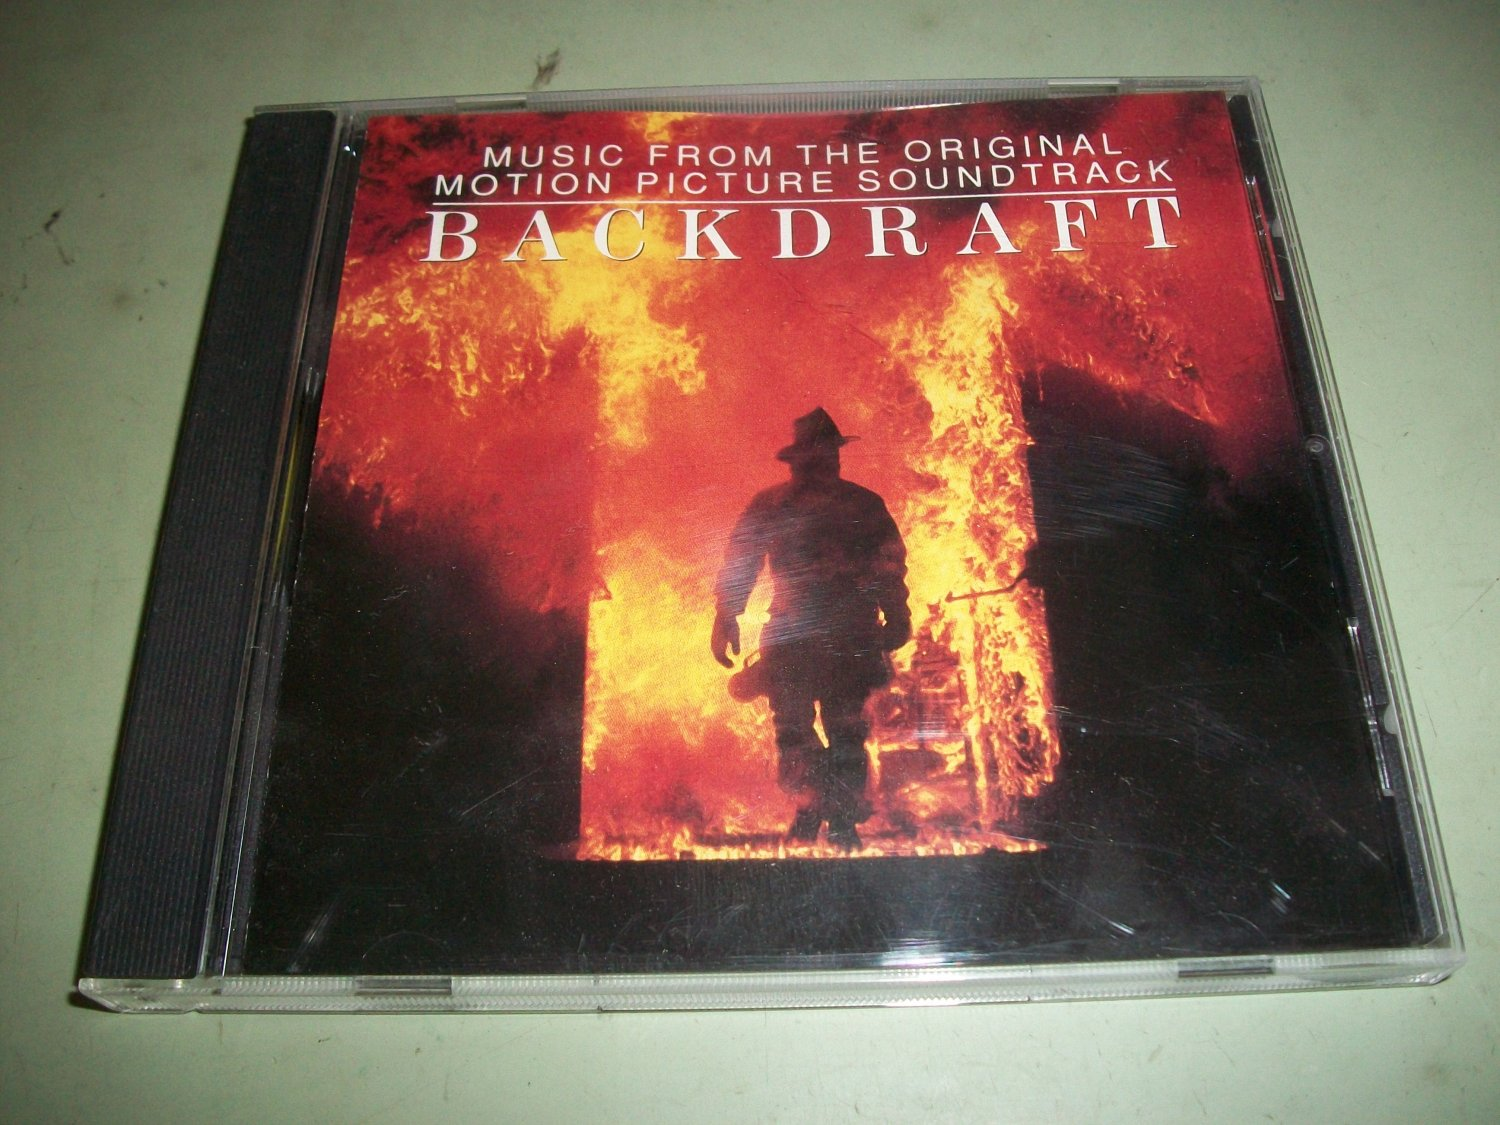 Backdraft - Hans Zimmer - Original Soundtrack CD